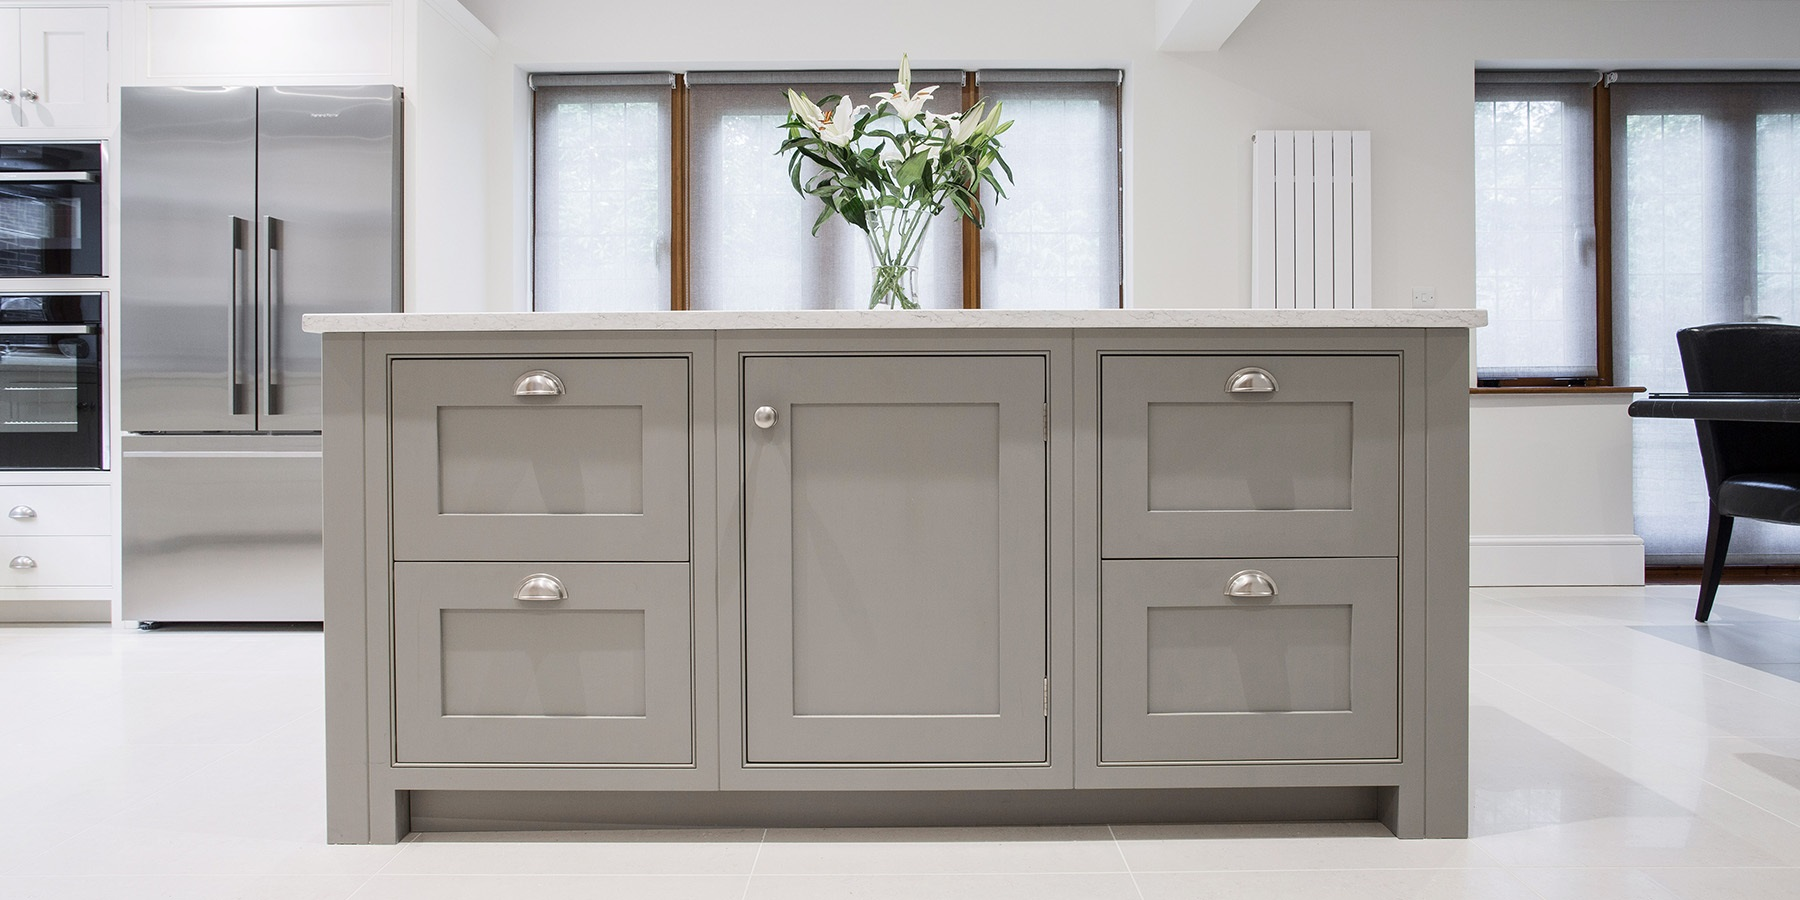 Burlanes Bespoke Kitchen Island - Handmade freestanding kitchen island with white worktops and antique silver cup handles.